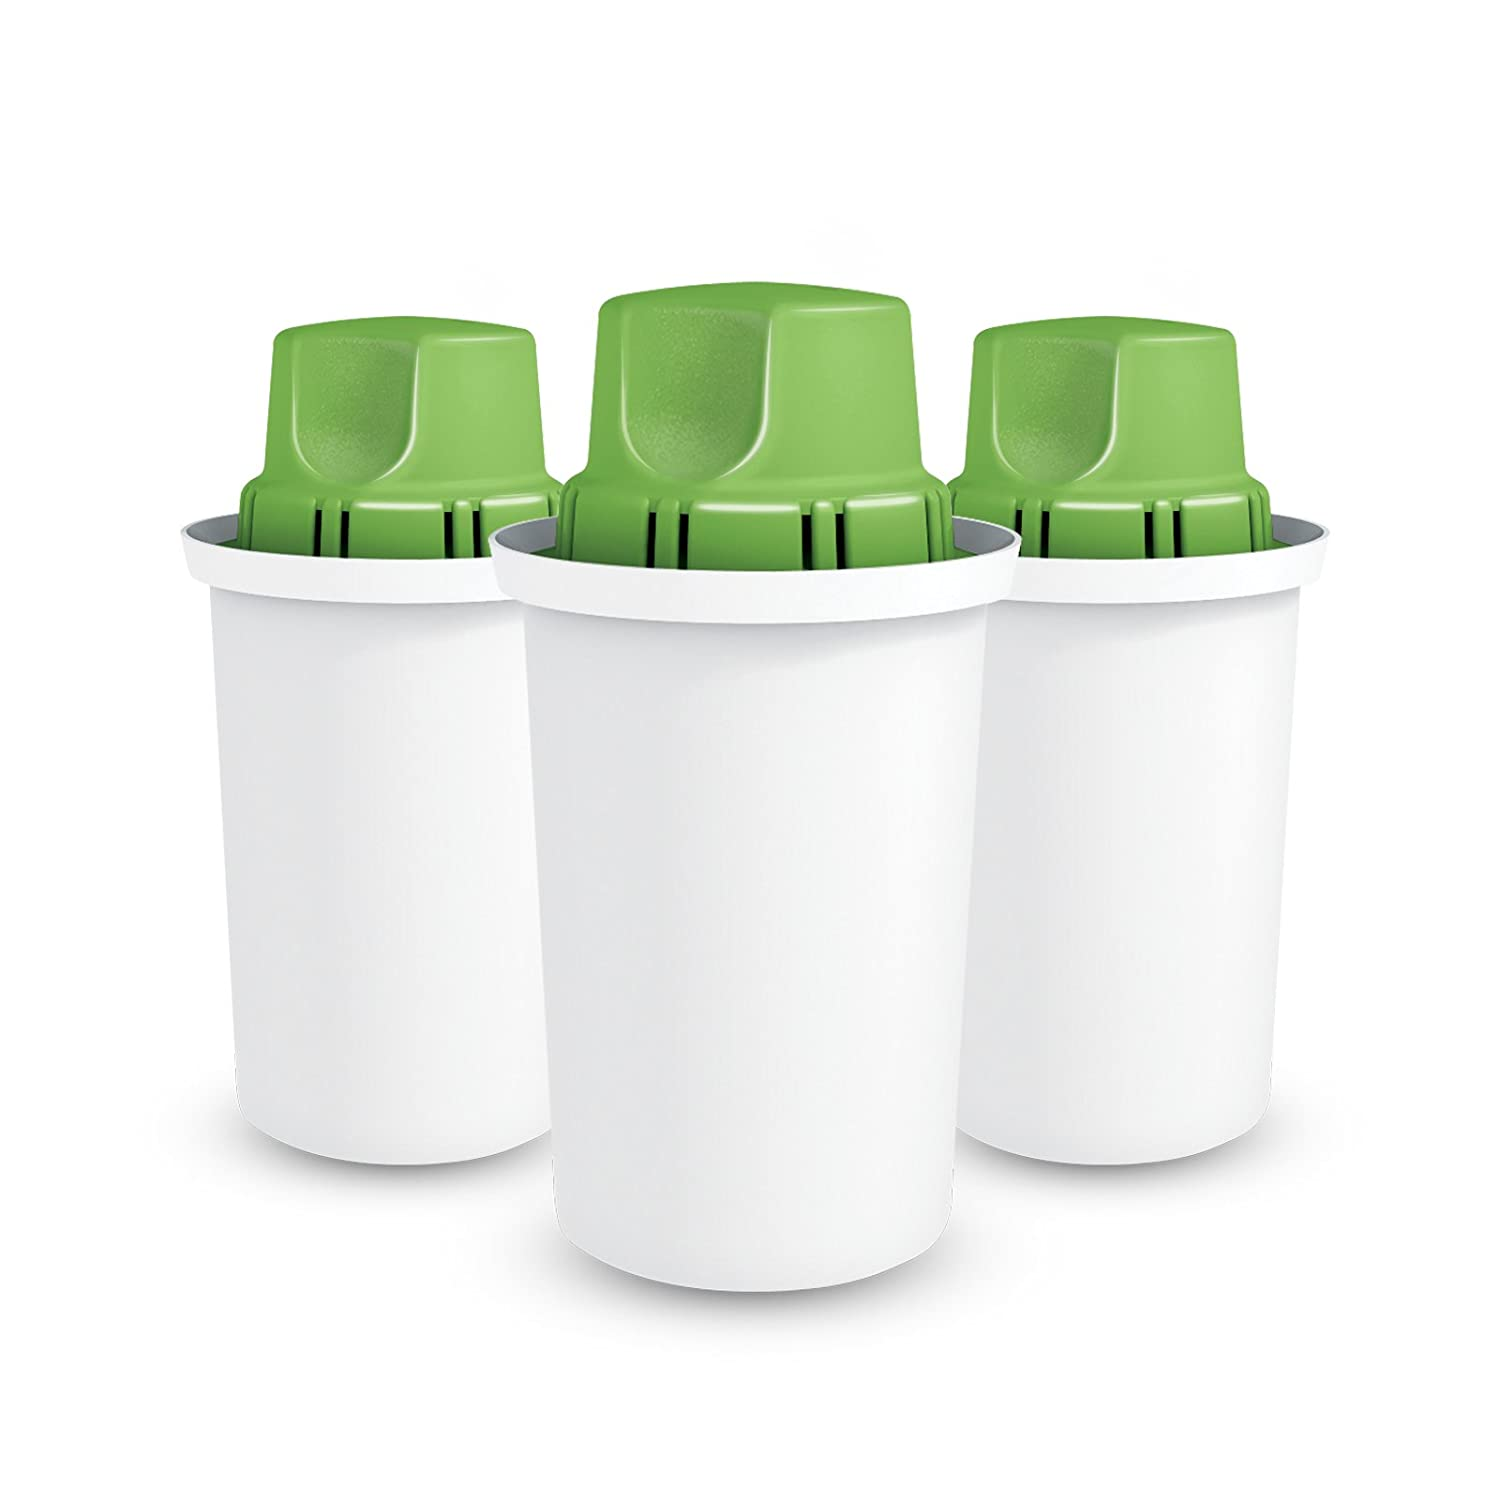 Dafi Alkaline UP Cartridge - Innovative Alkaline Water Filter System - Get water with high pH and negative OR potential (3-pack) - Fits Brita Water Pitchers